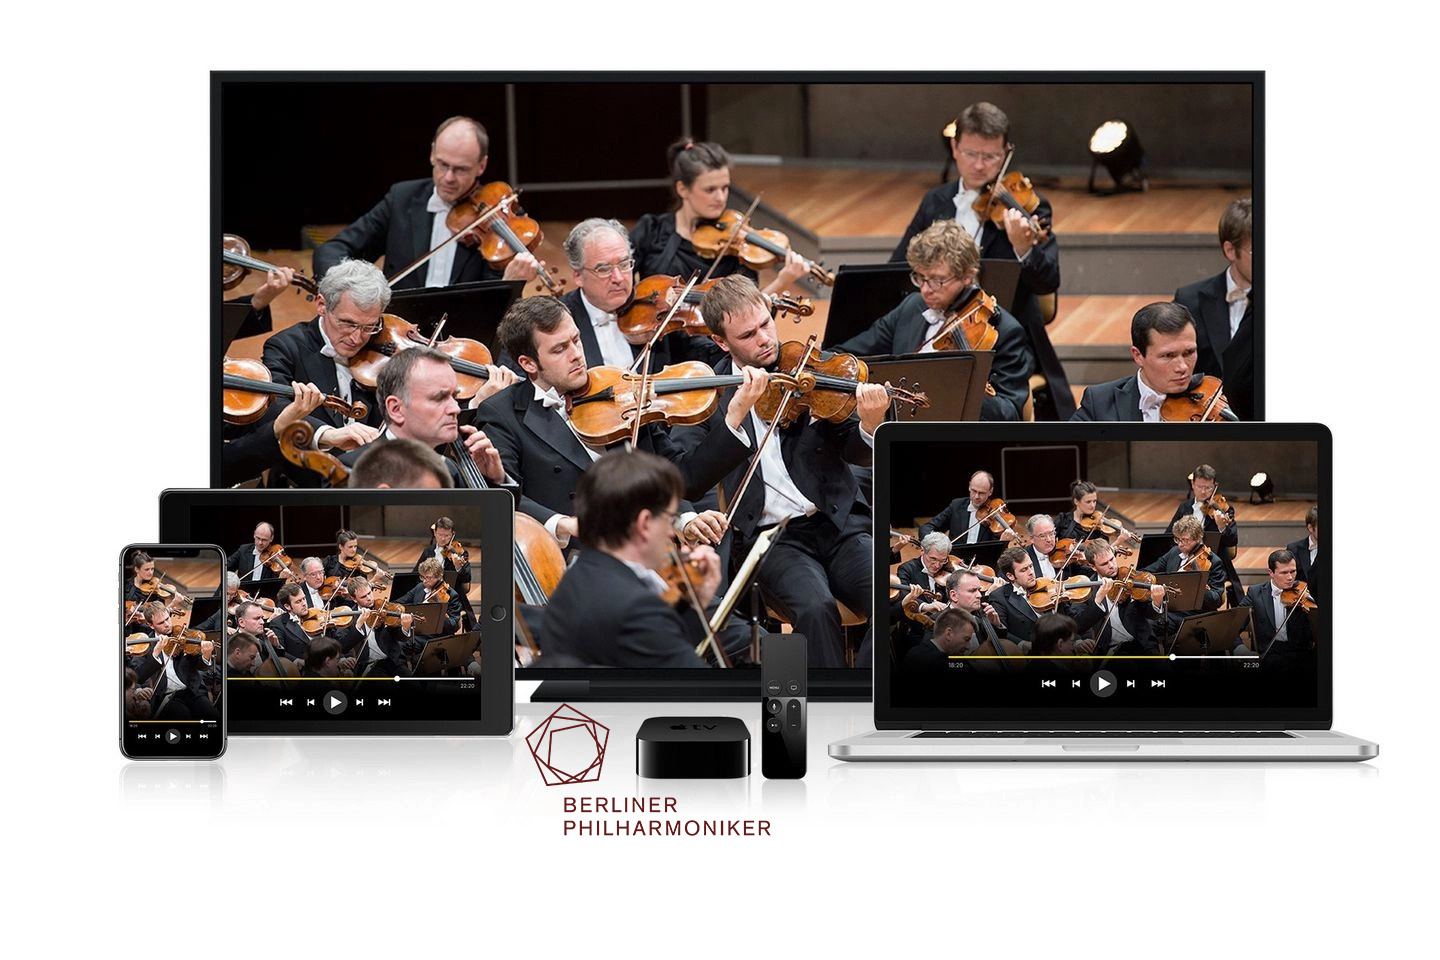 Berliner Philharmoniker (Digital Concert Hall ONLINE 2020)